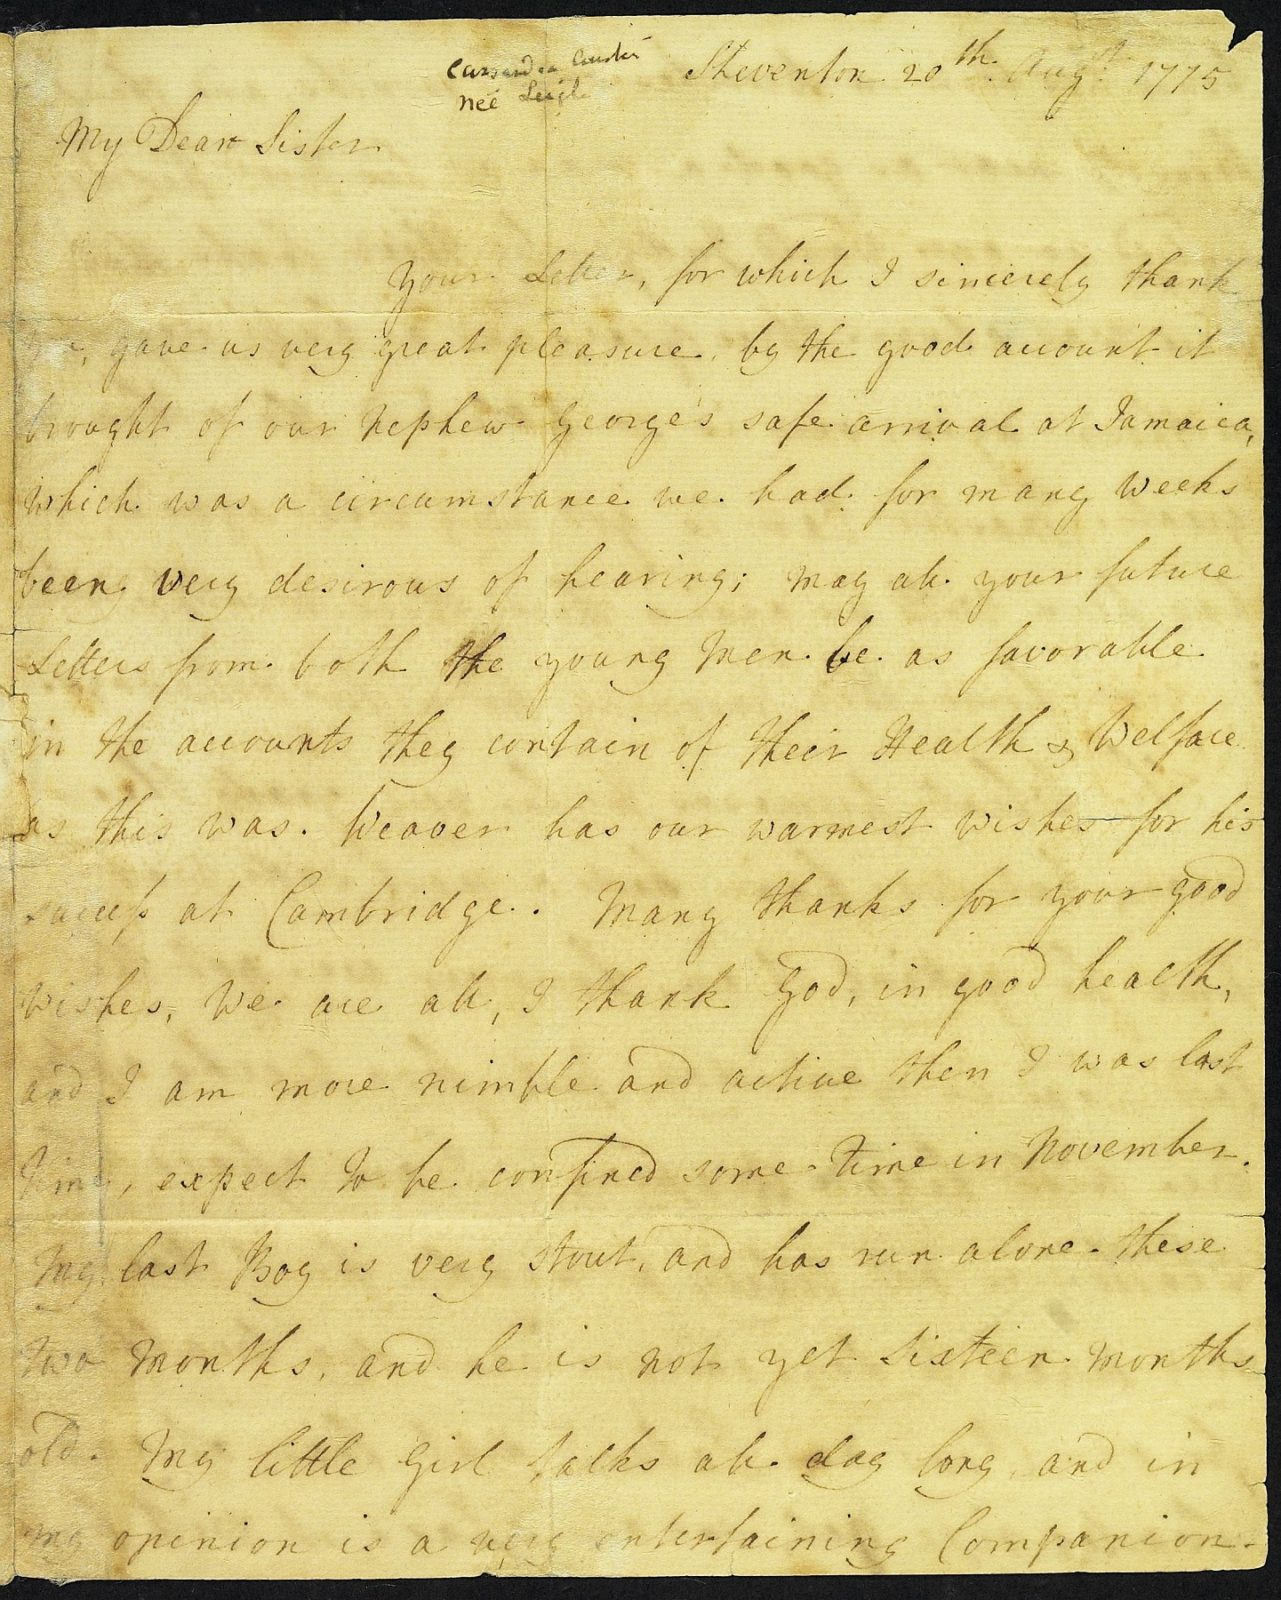 Letter from Mrs Austen to Mrs Walter, 20 August 1775, page 1